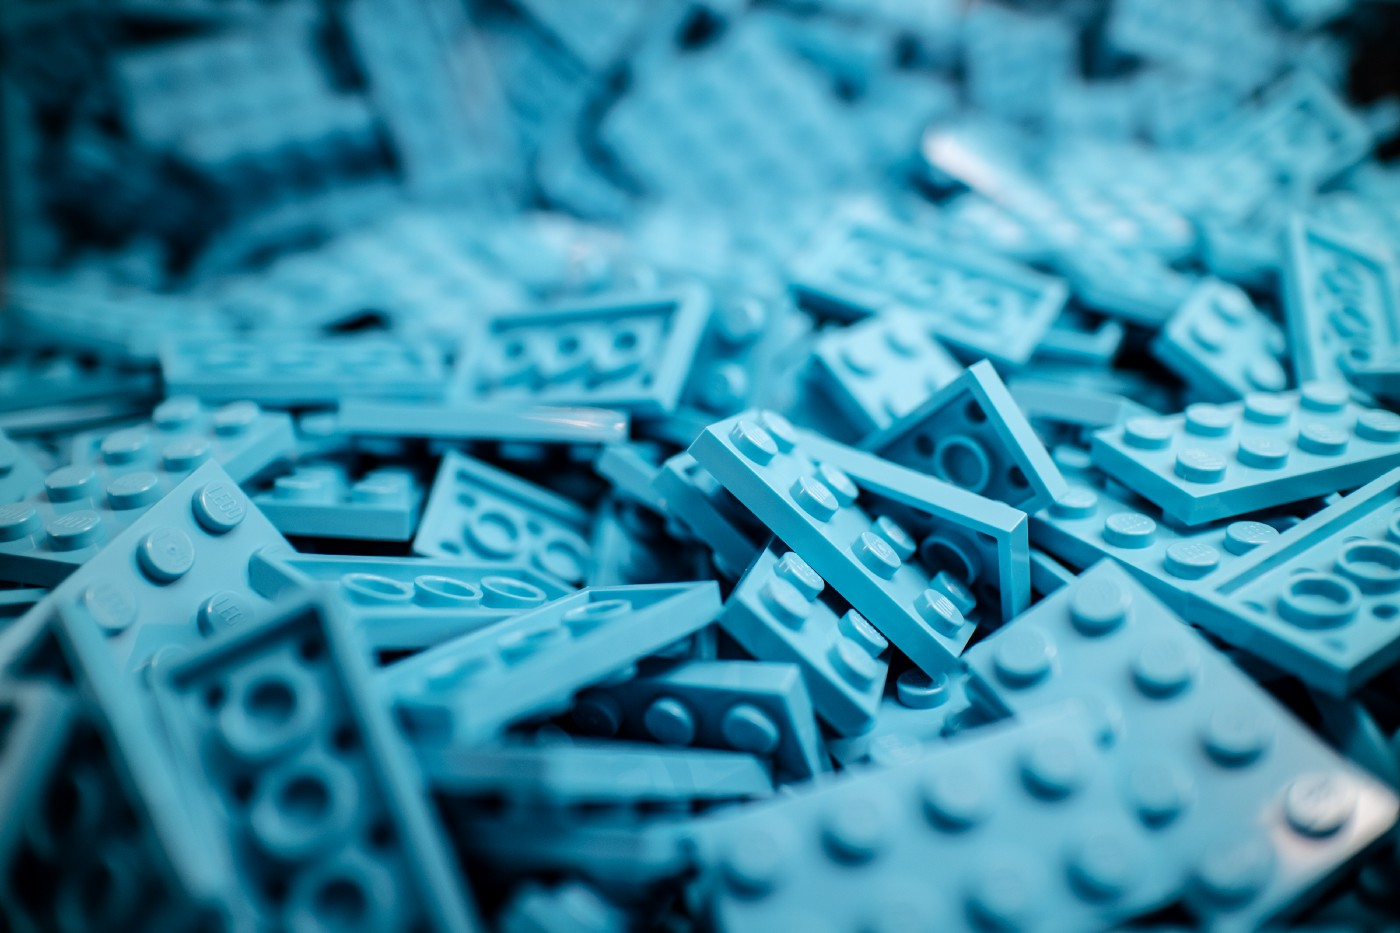 Bluewashed image of assorted Lego pieces.